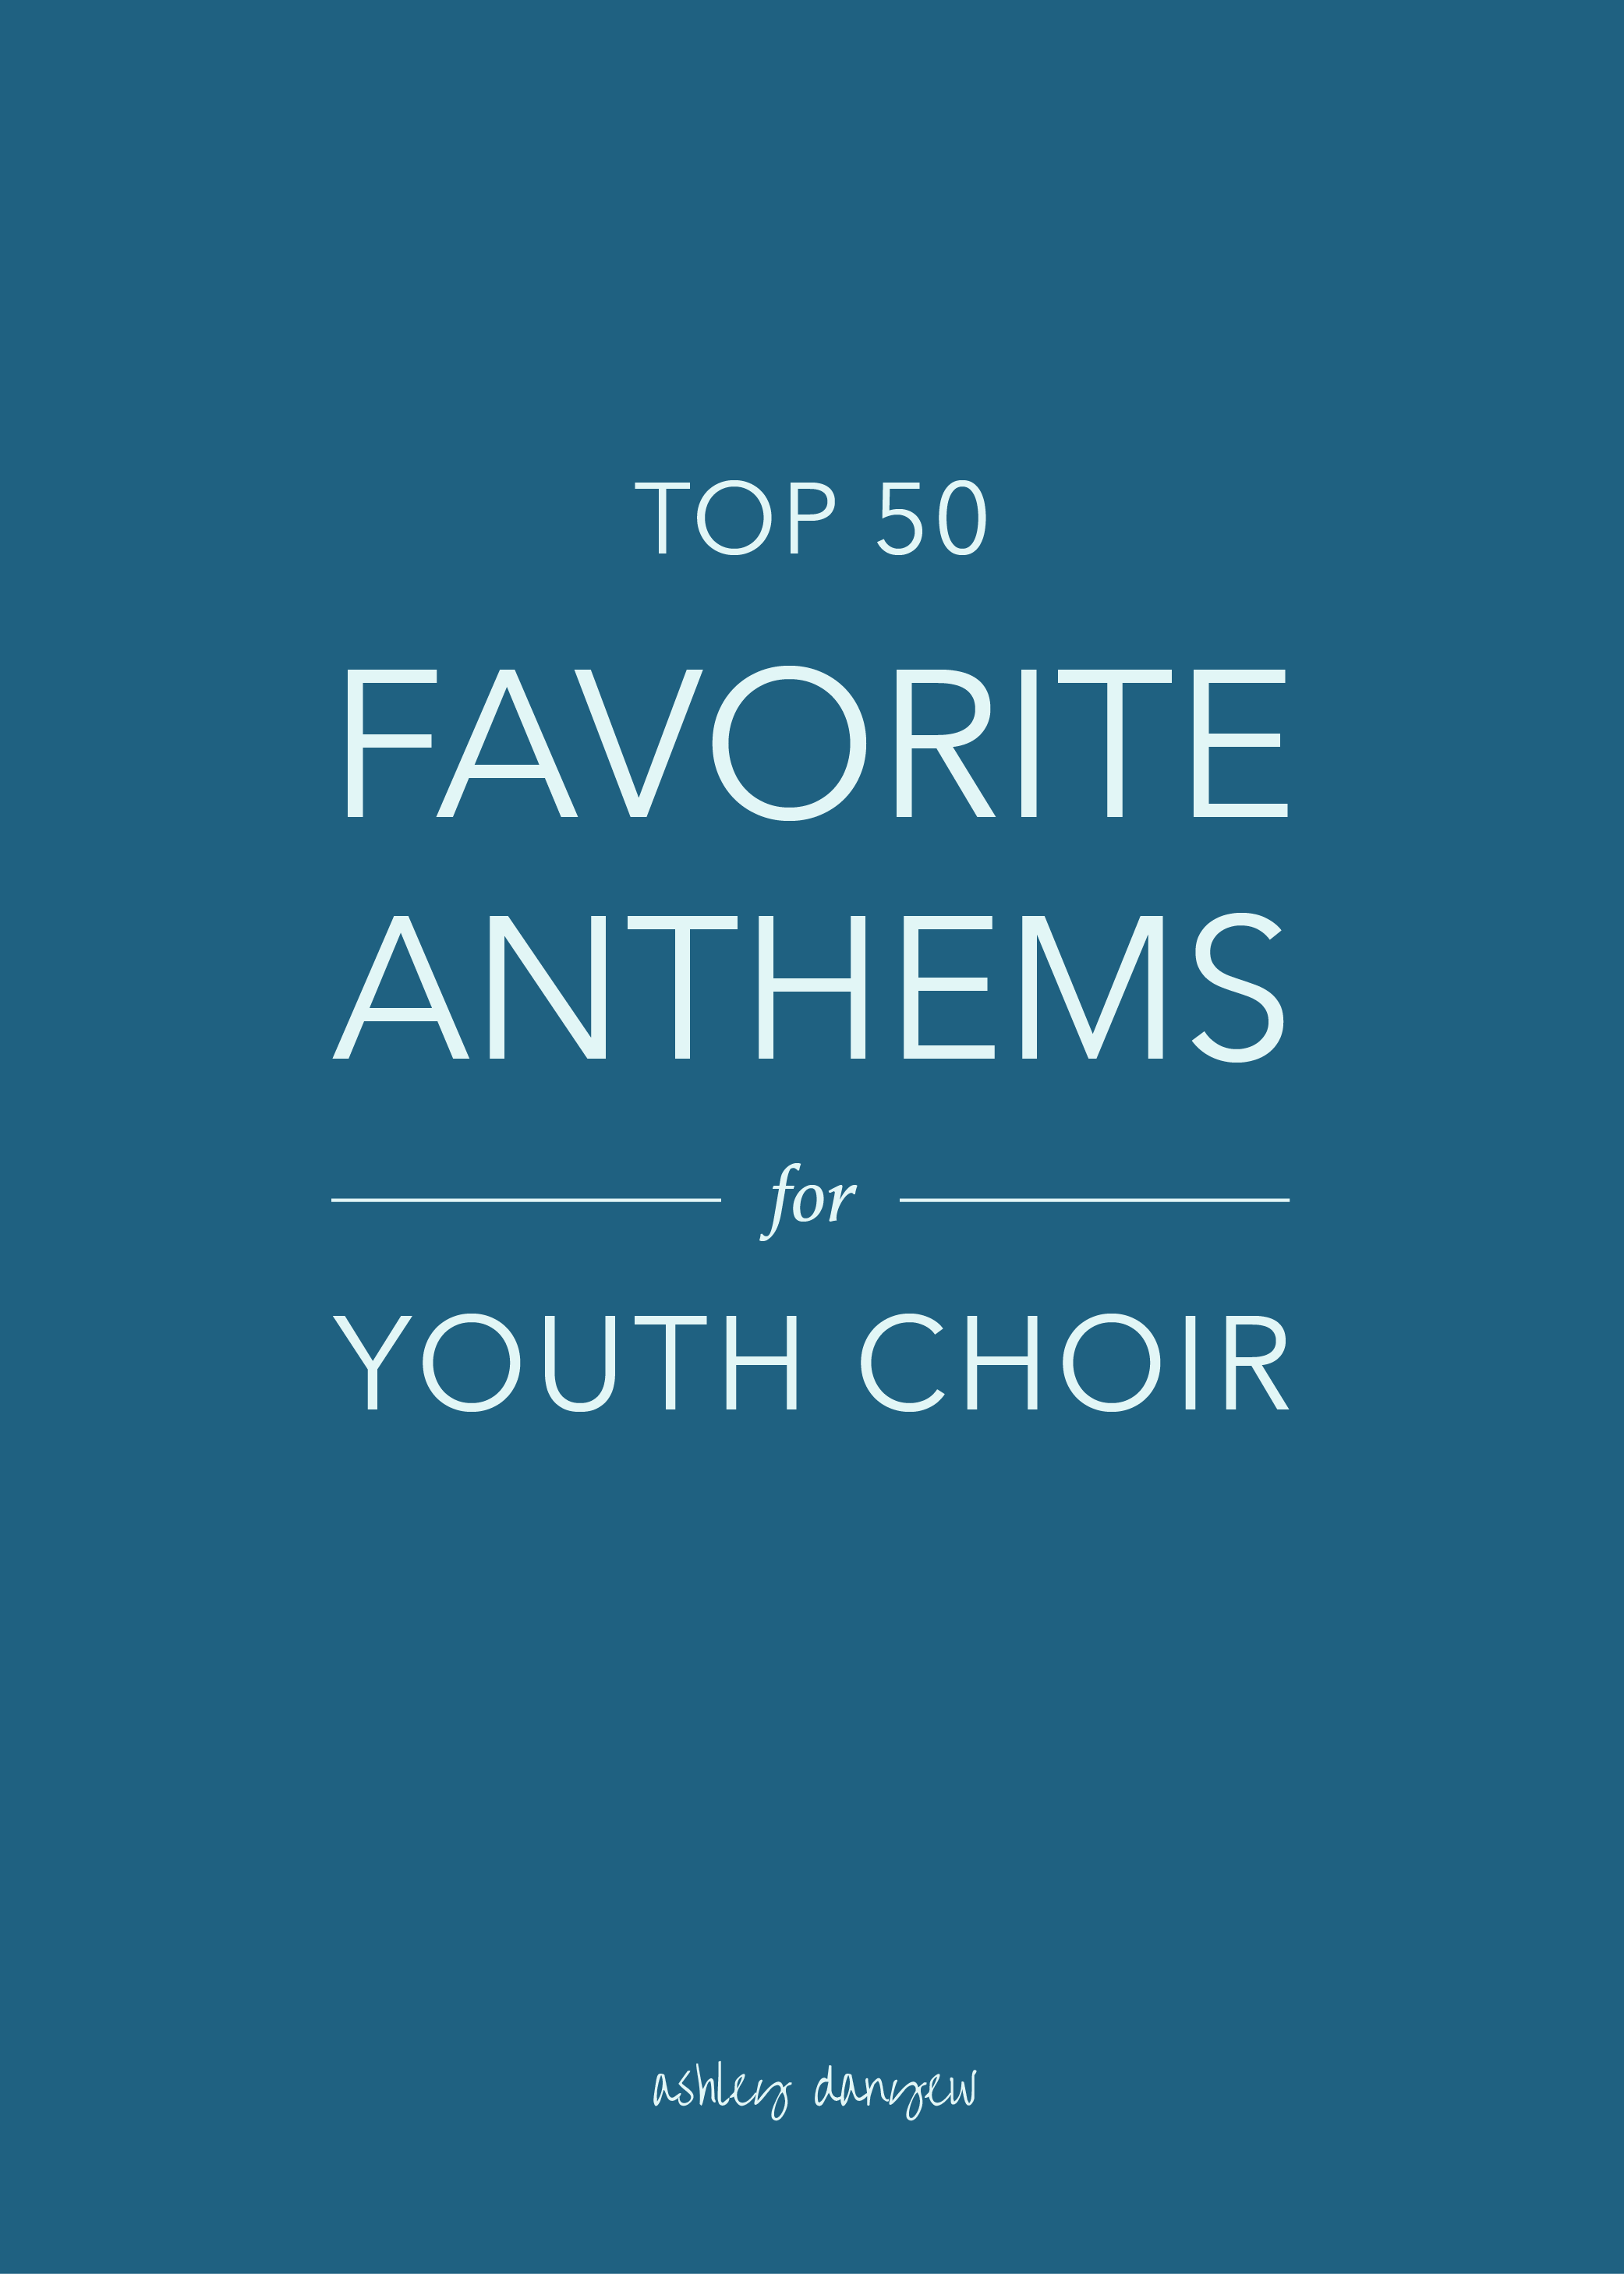 Top-50-Favorite-Anthems-for-Youth-Choir-01.png